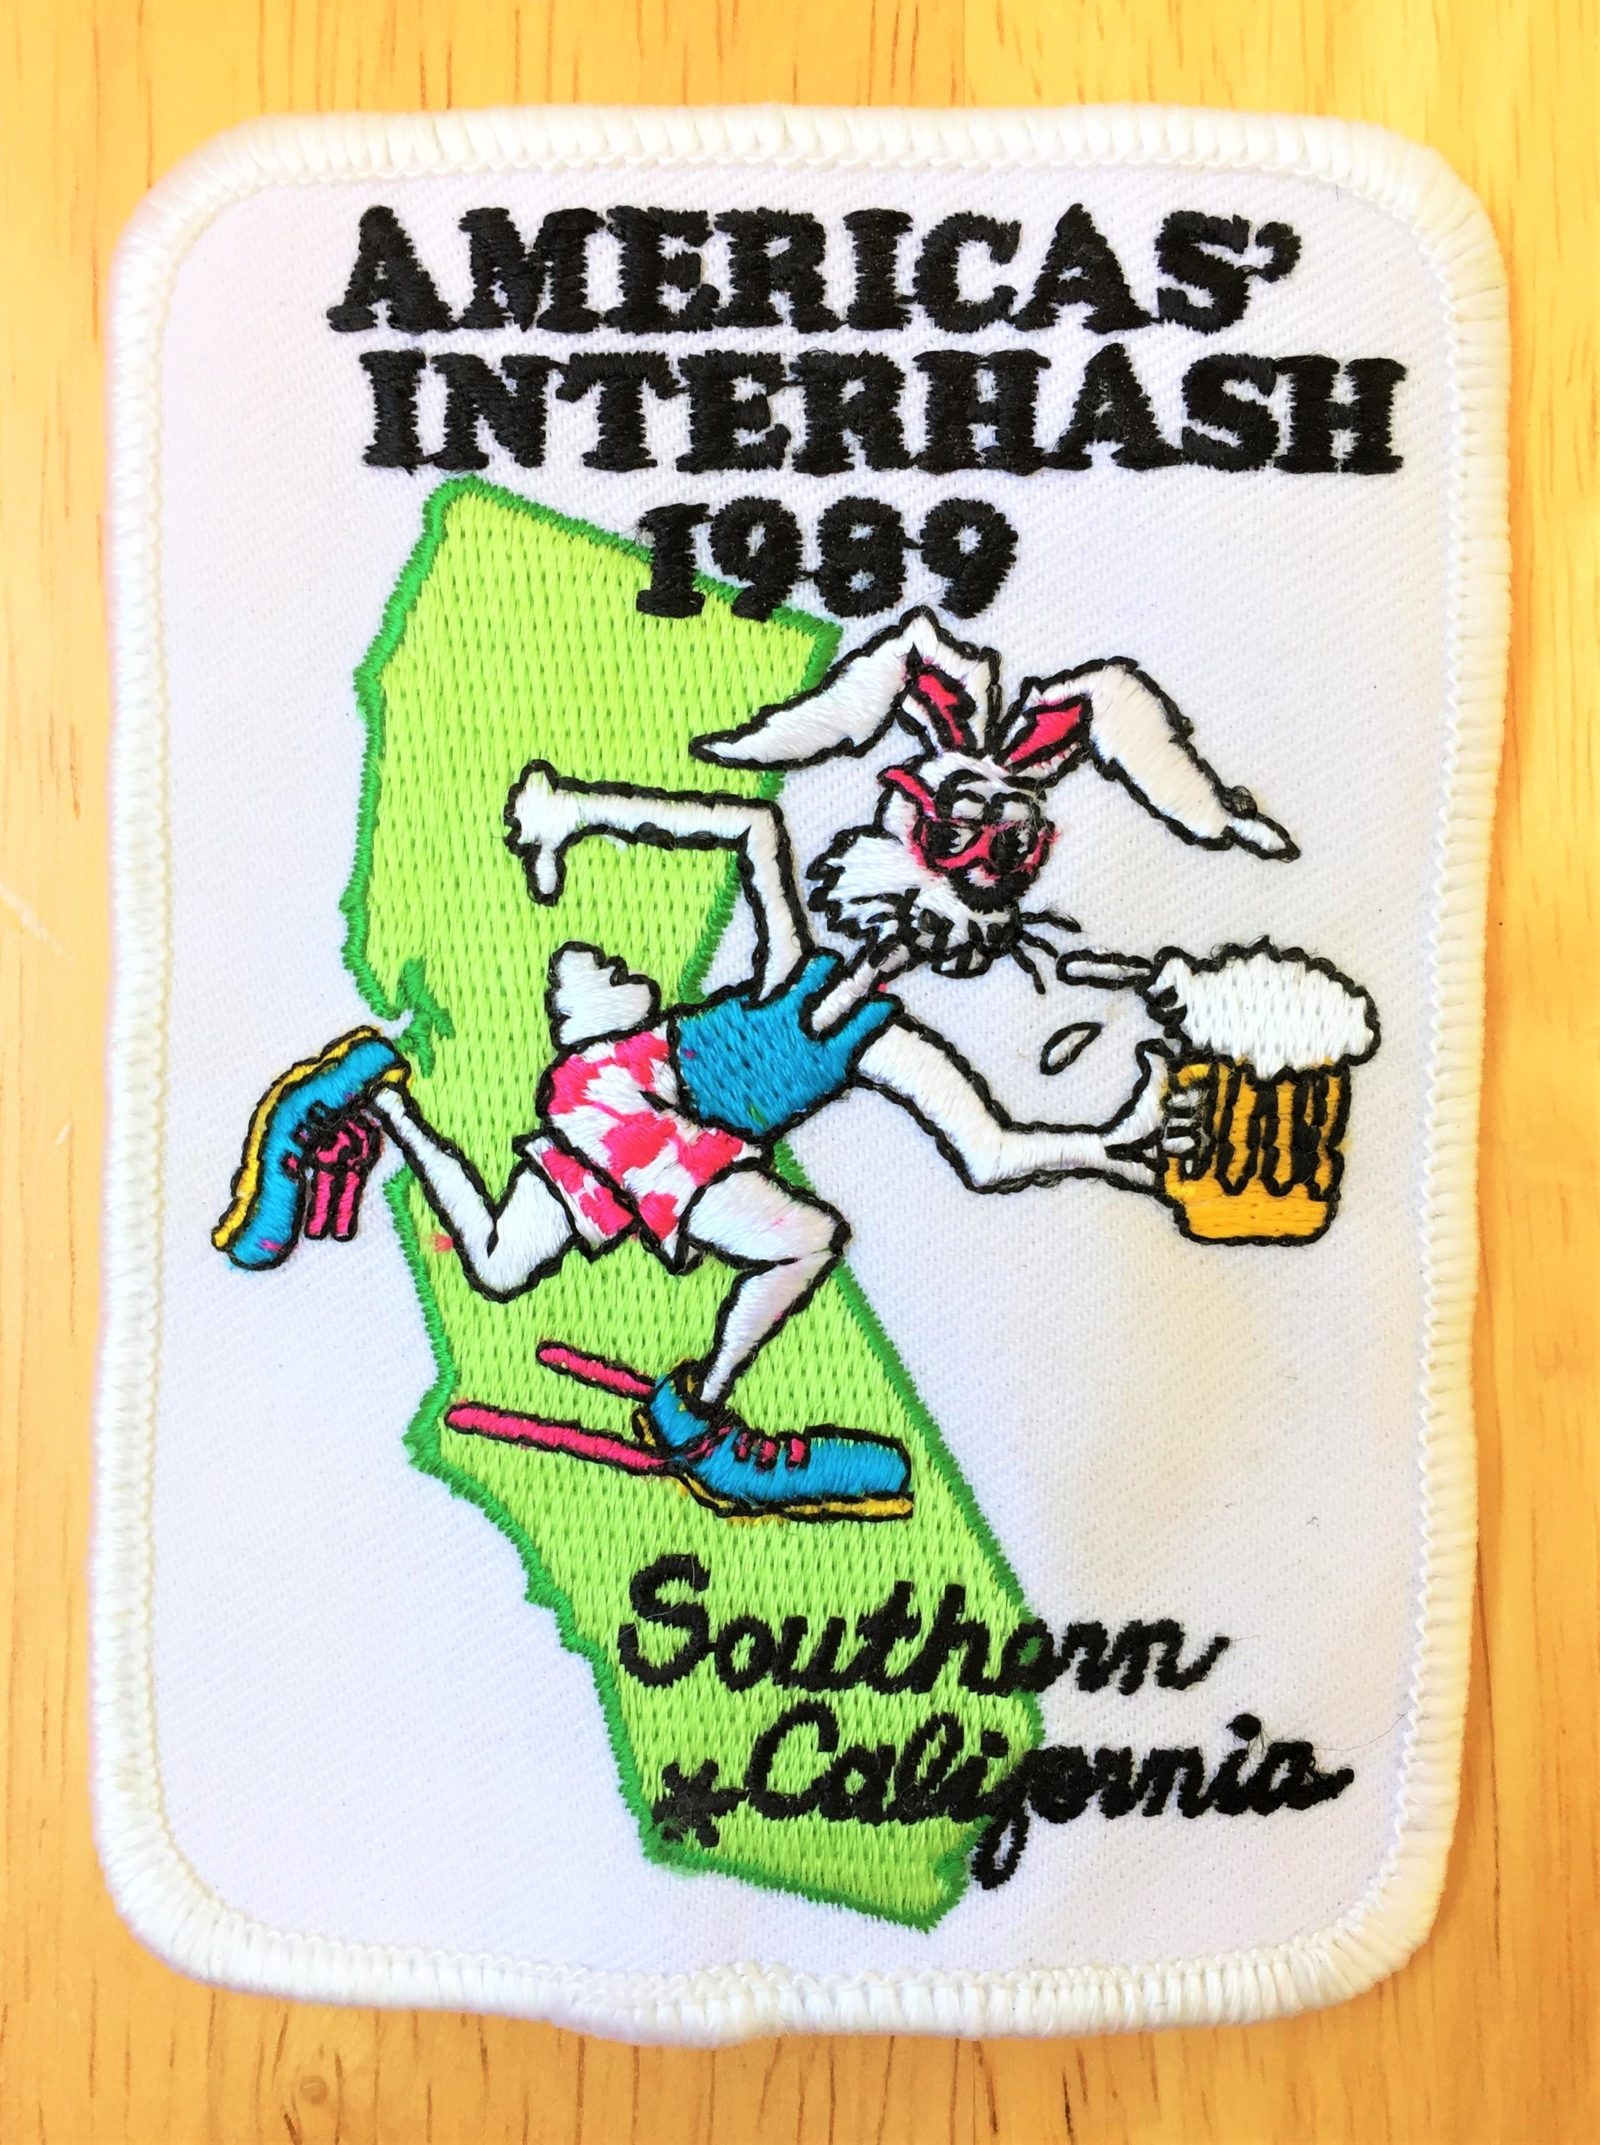 America's Interhash Southern California (1989) Hash Patch by Manhandler